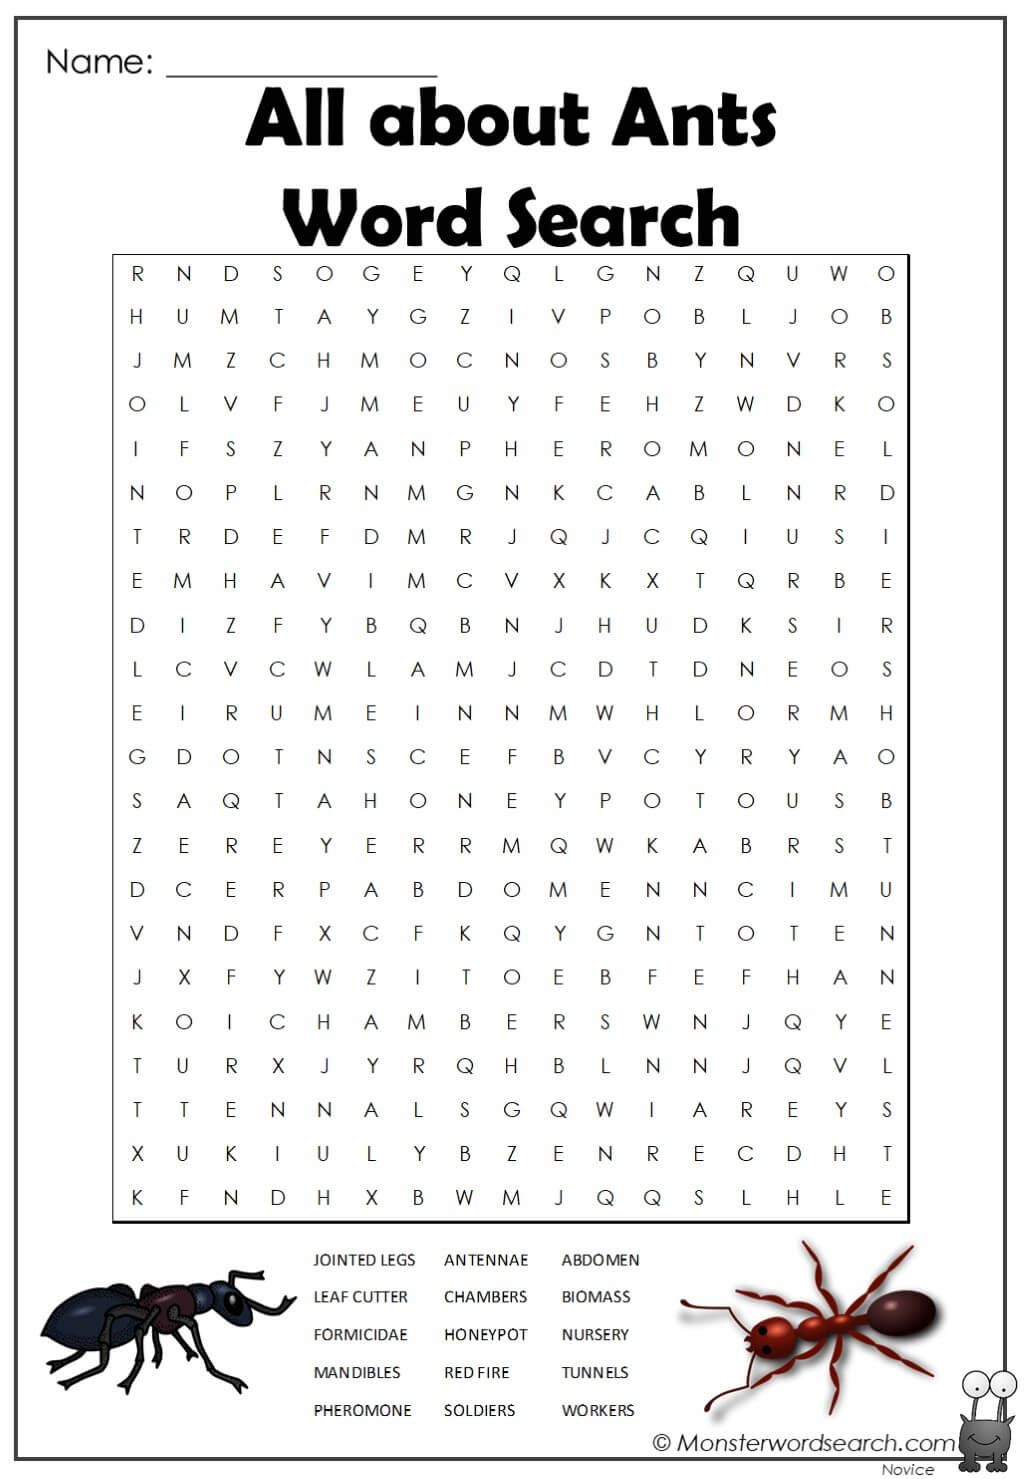 All About Ants Word Search Ants Free Printable Word Searches Words [ 1479 x 1024 Pixel ]